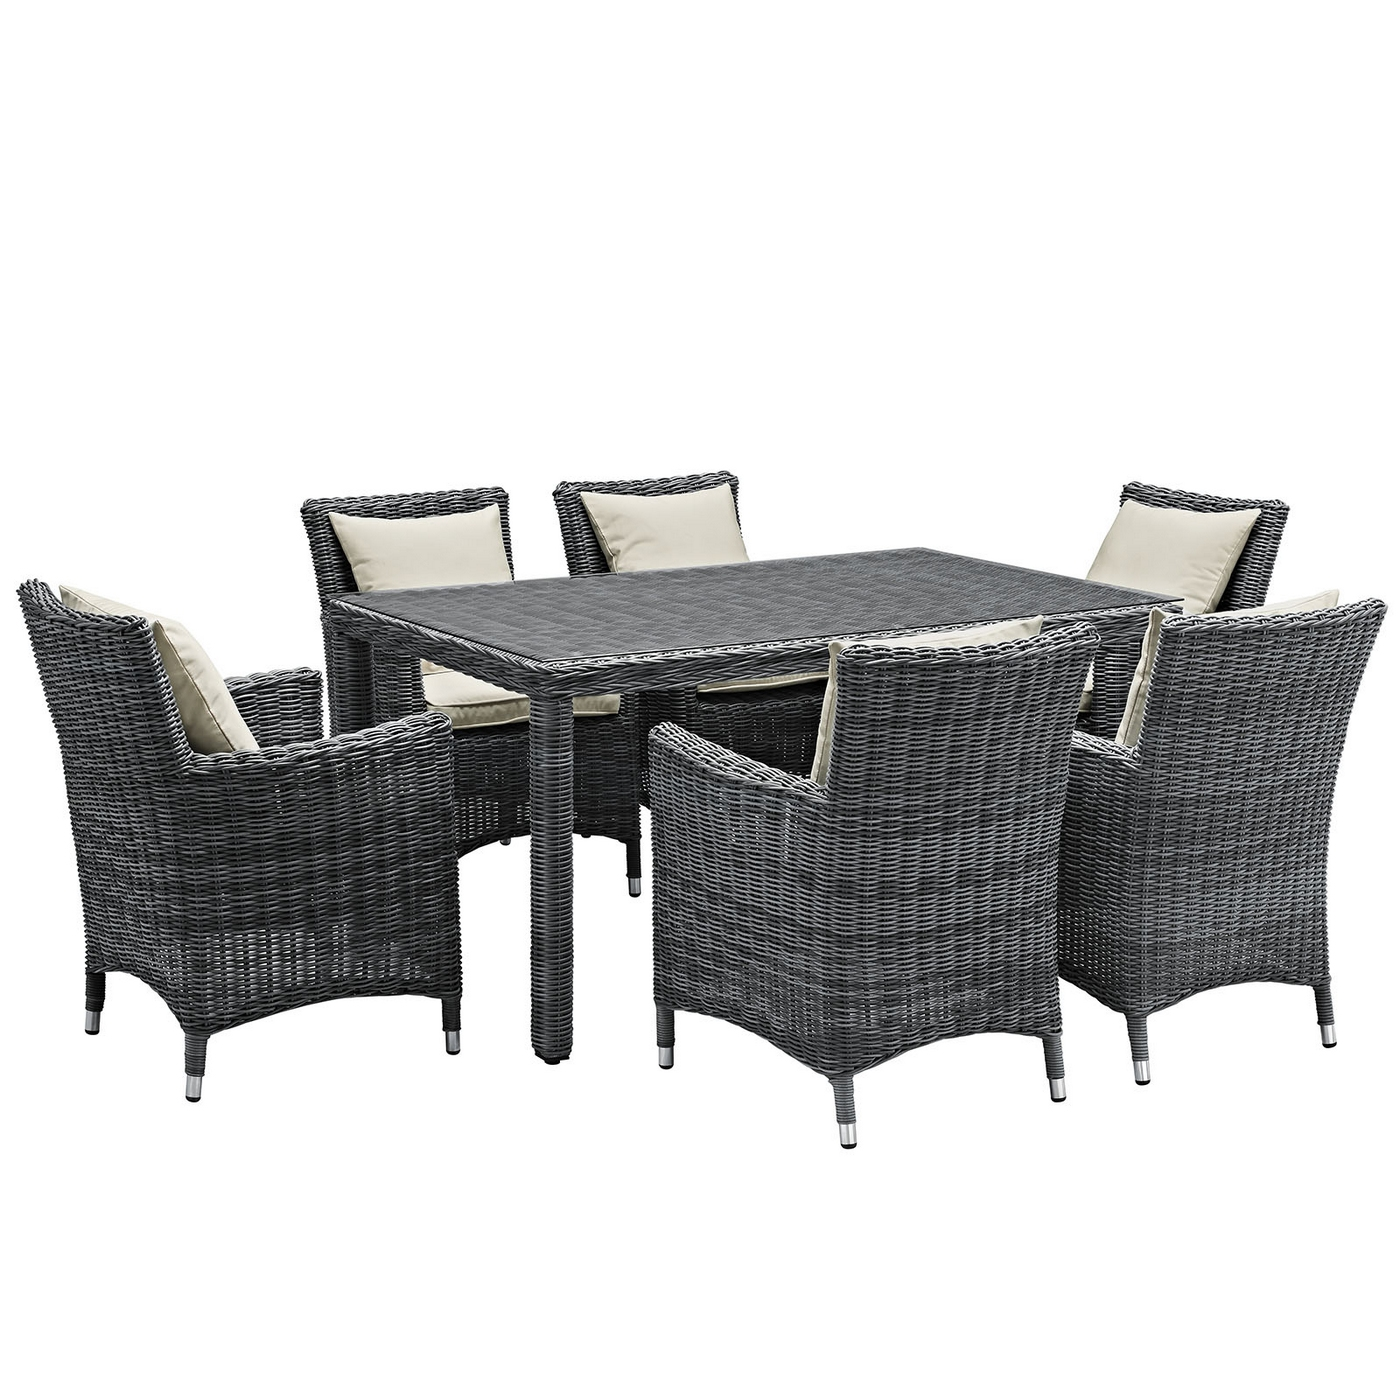 Summon Modern 7 Piece Outdoor Patio Sunbrella 60dining Set Antique